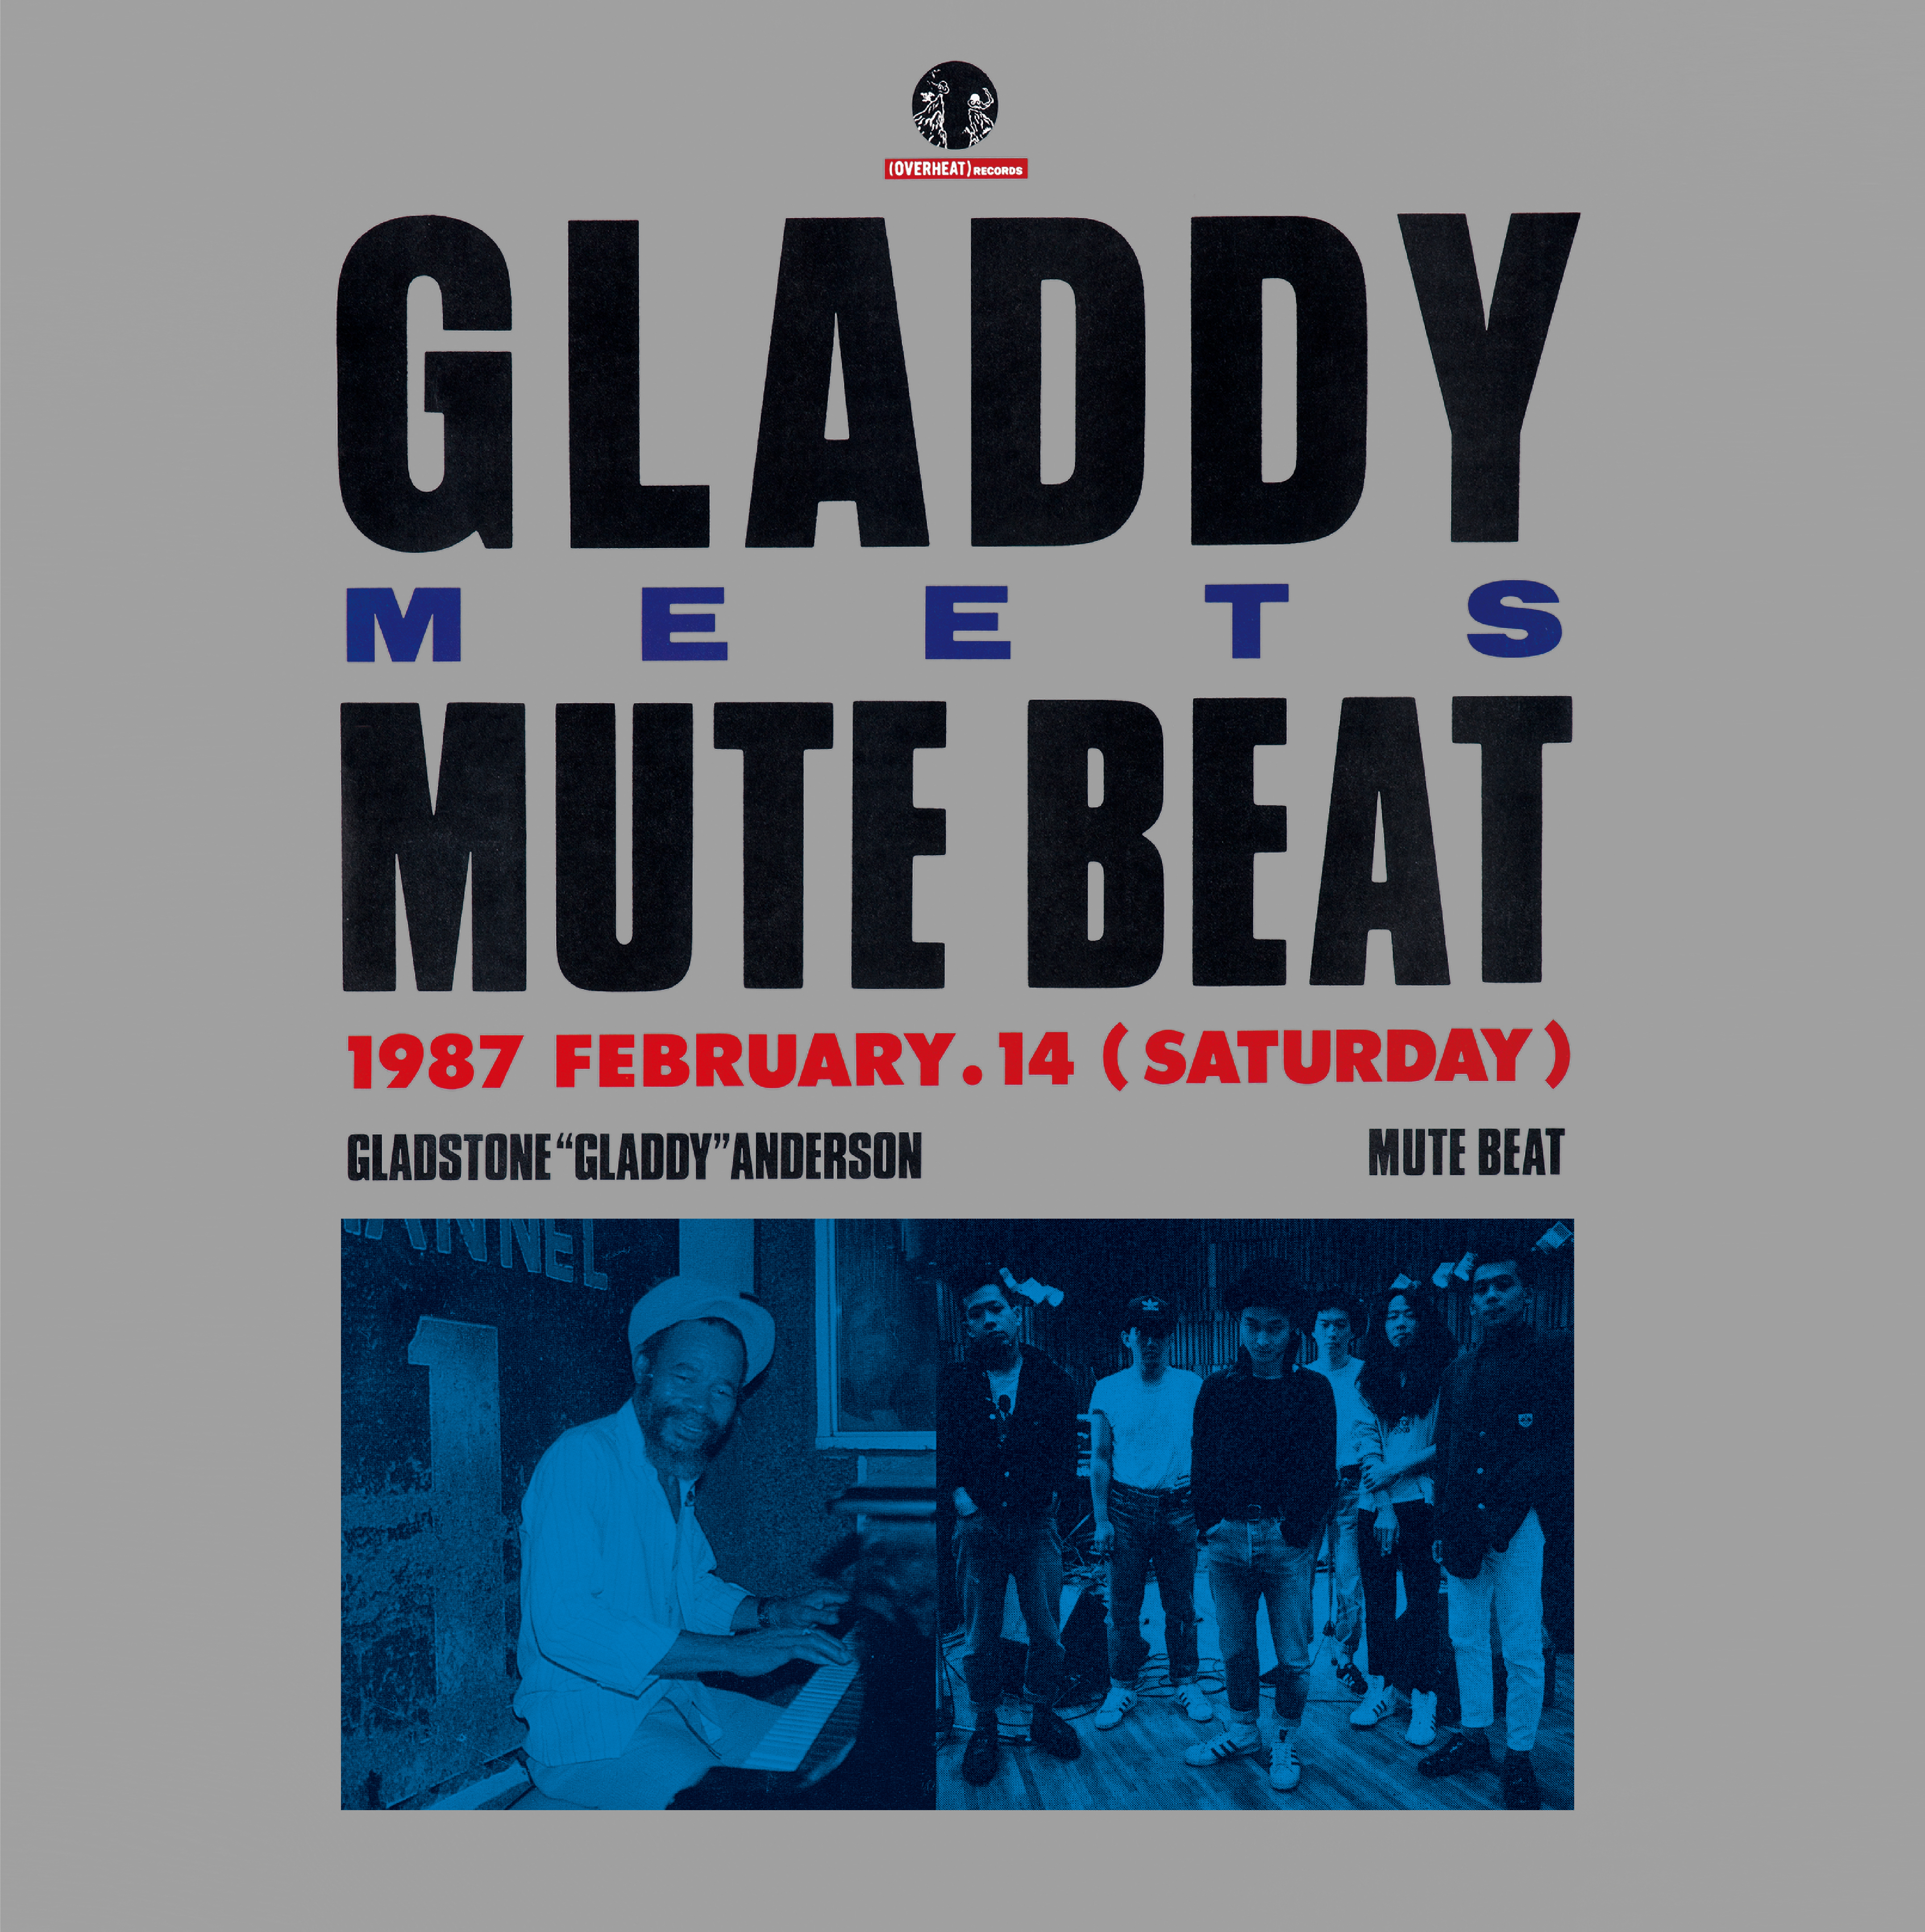 GLADDY MEETS MUTE BEAT Image